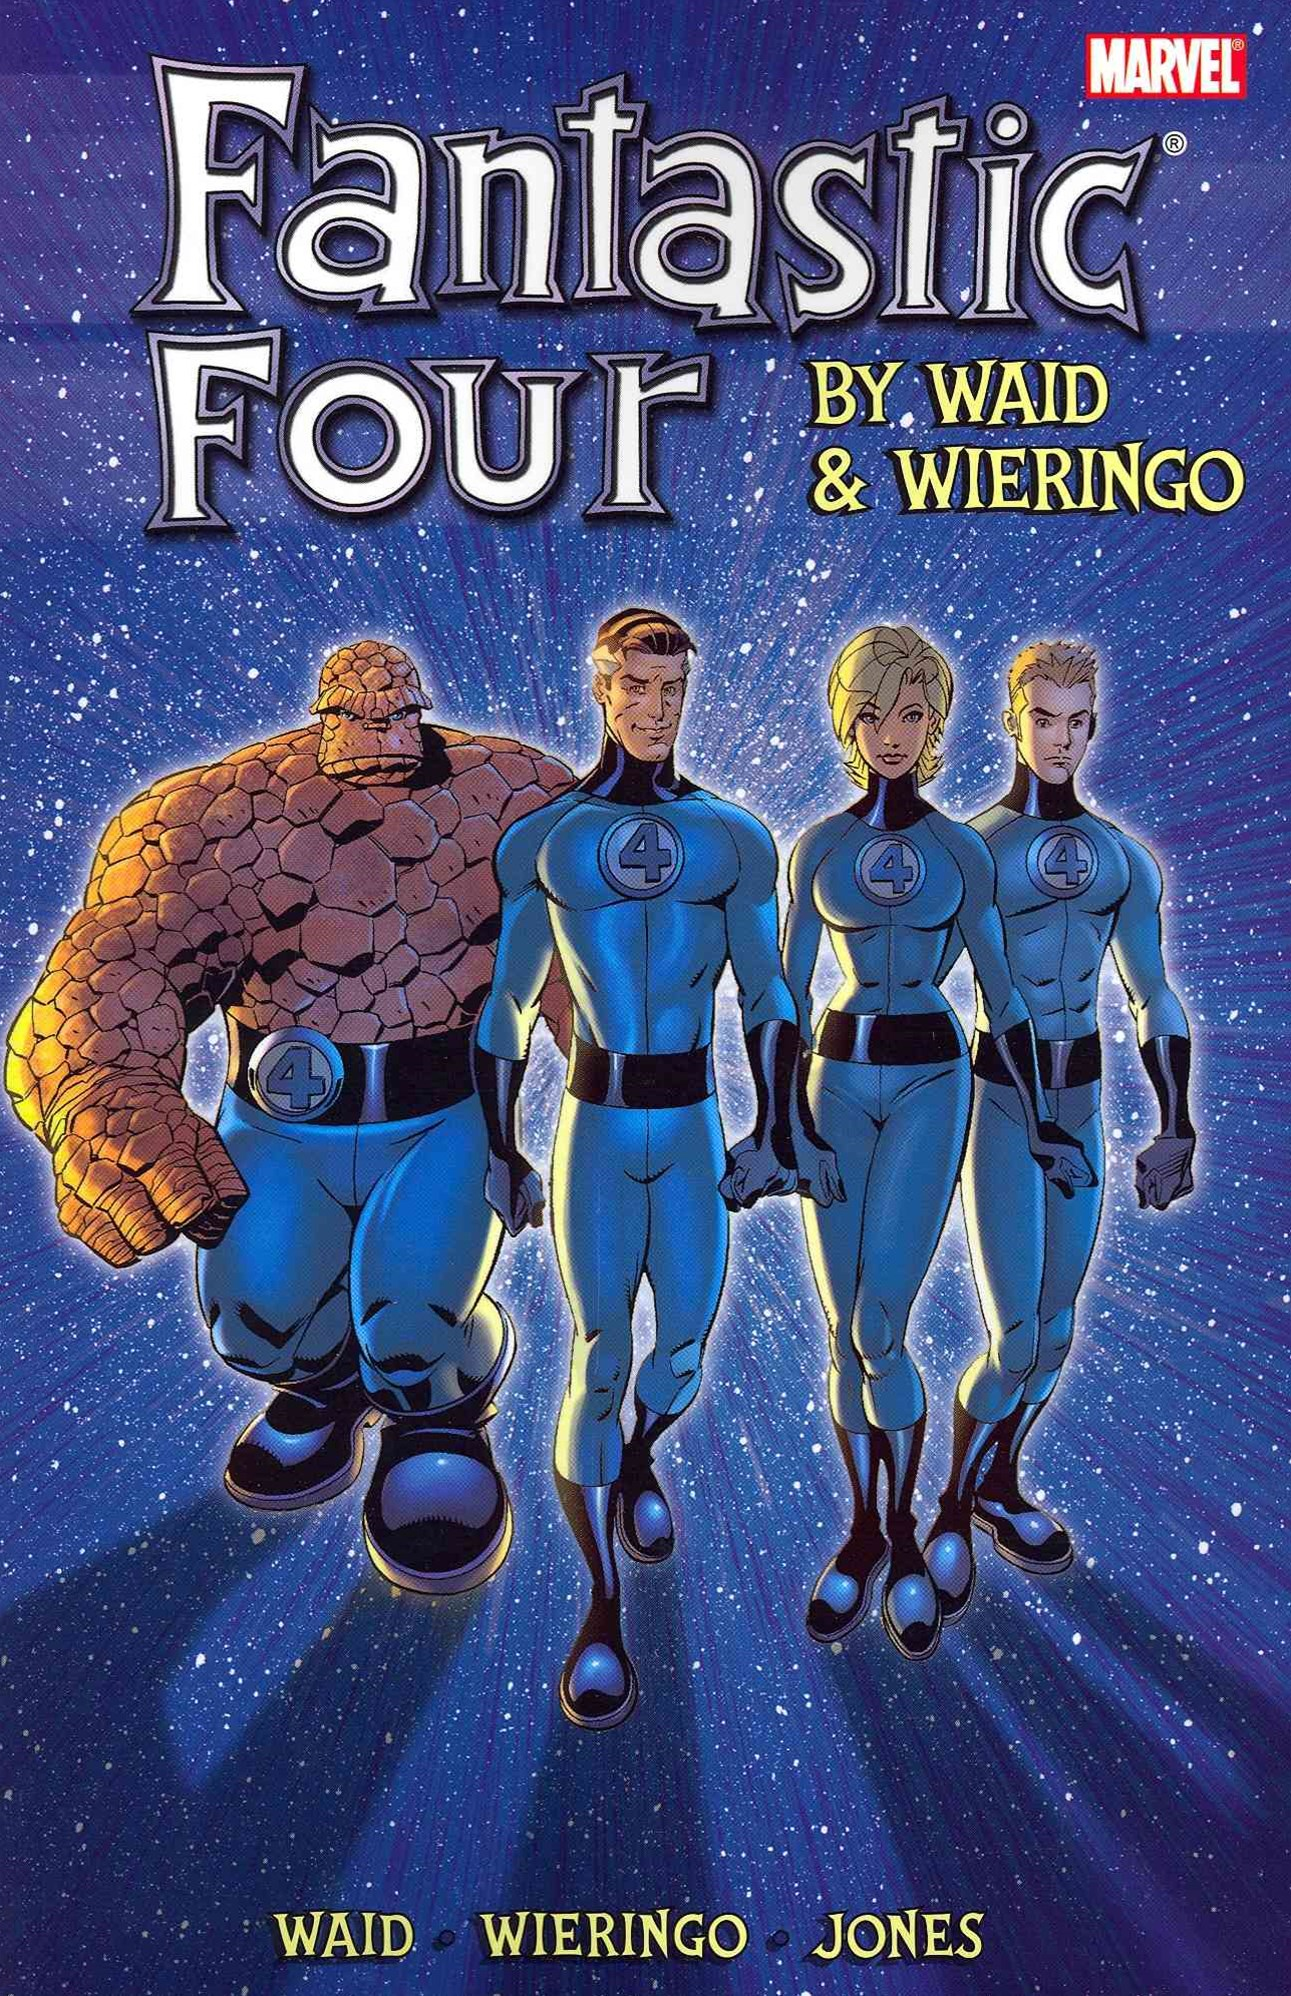 Fantastic Four by Waid and Wieringo Ultimate Collection Book 2